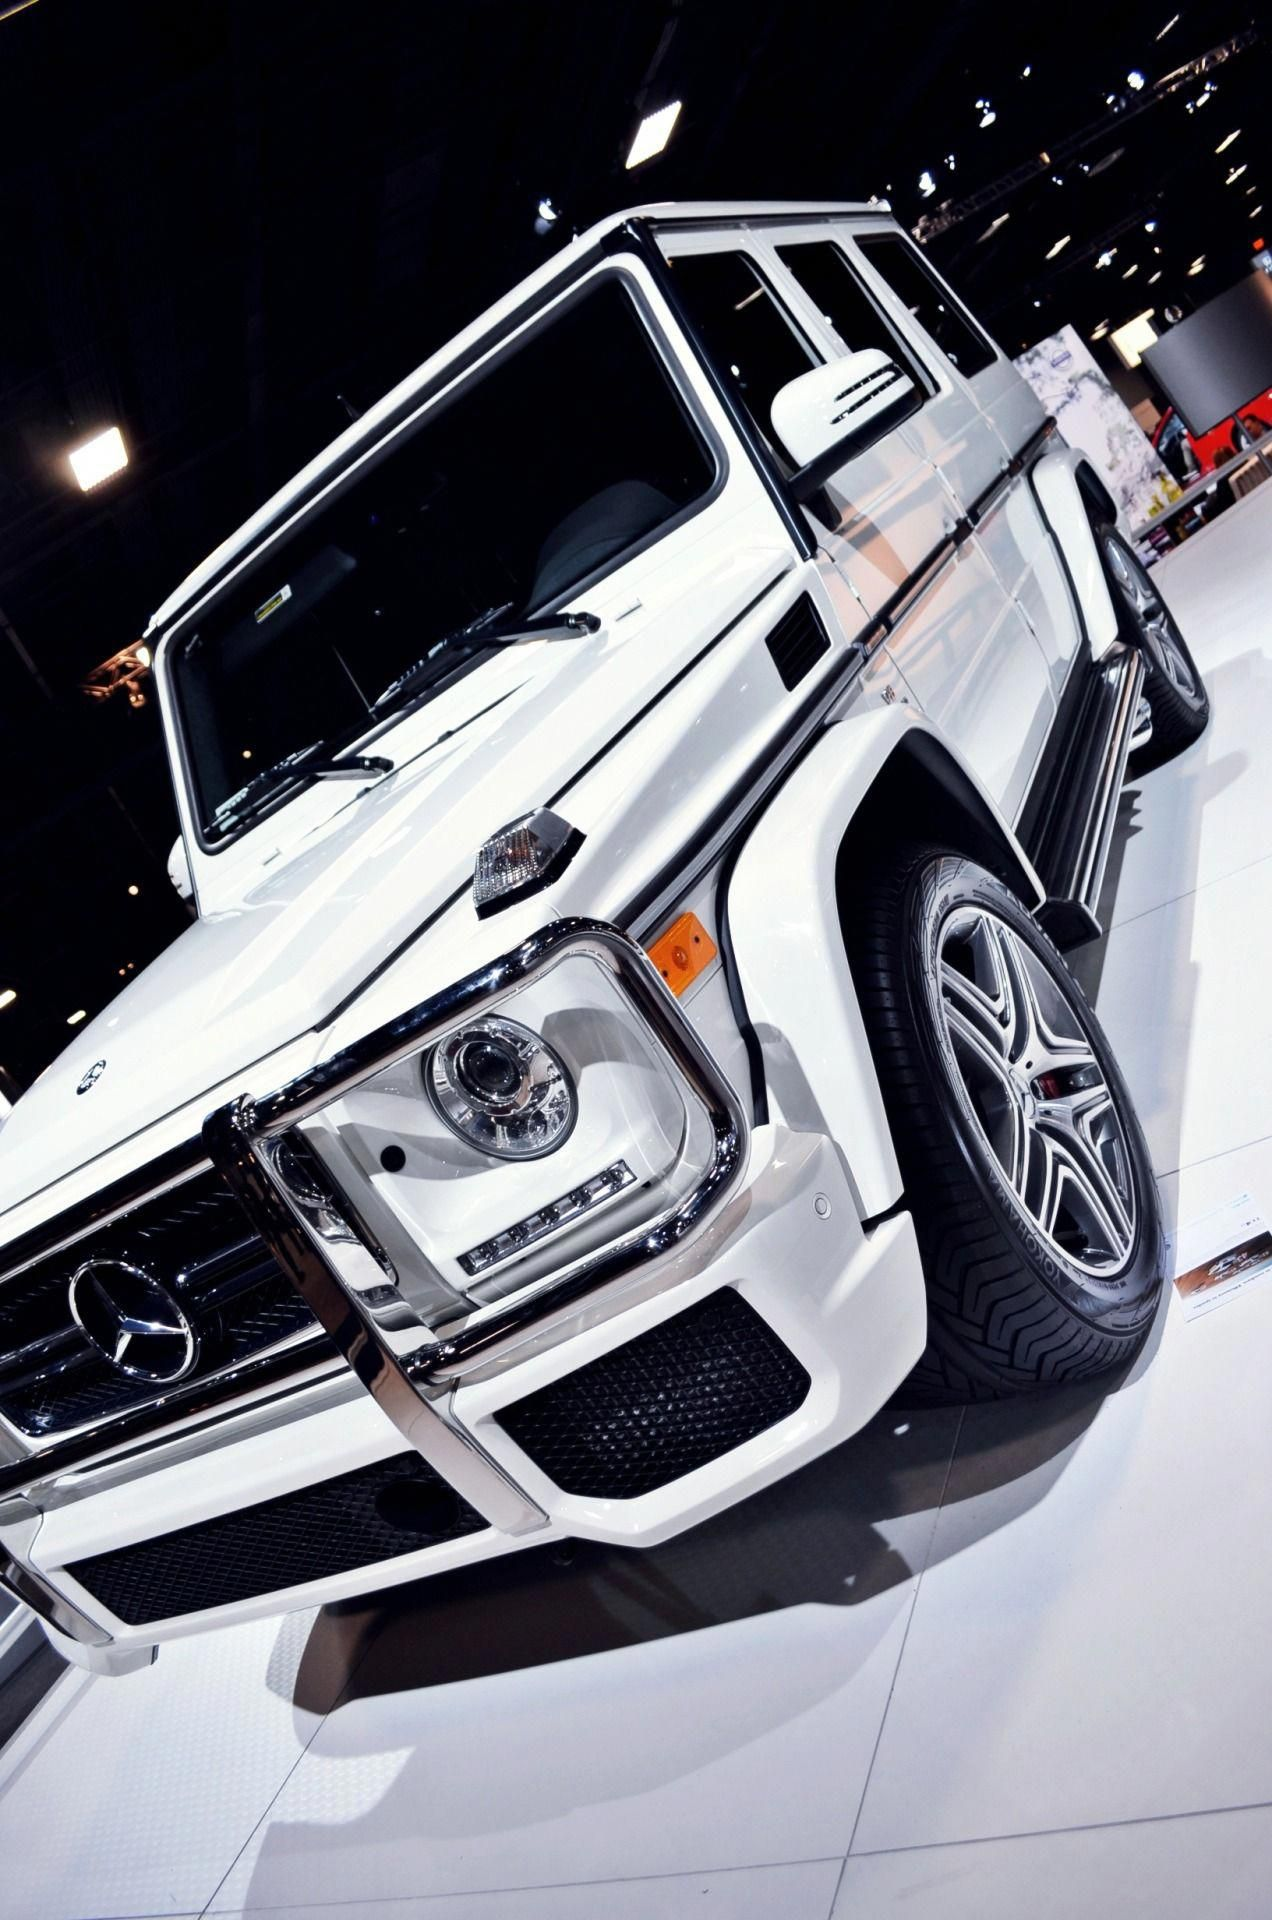 Fantastic Super cars photos are readily available on our internet site. Have a look and you will no